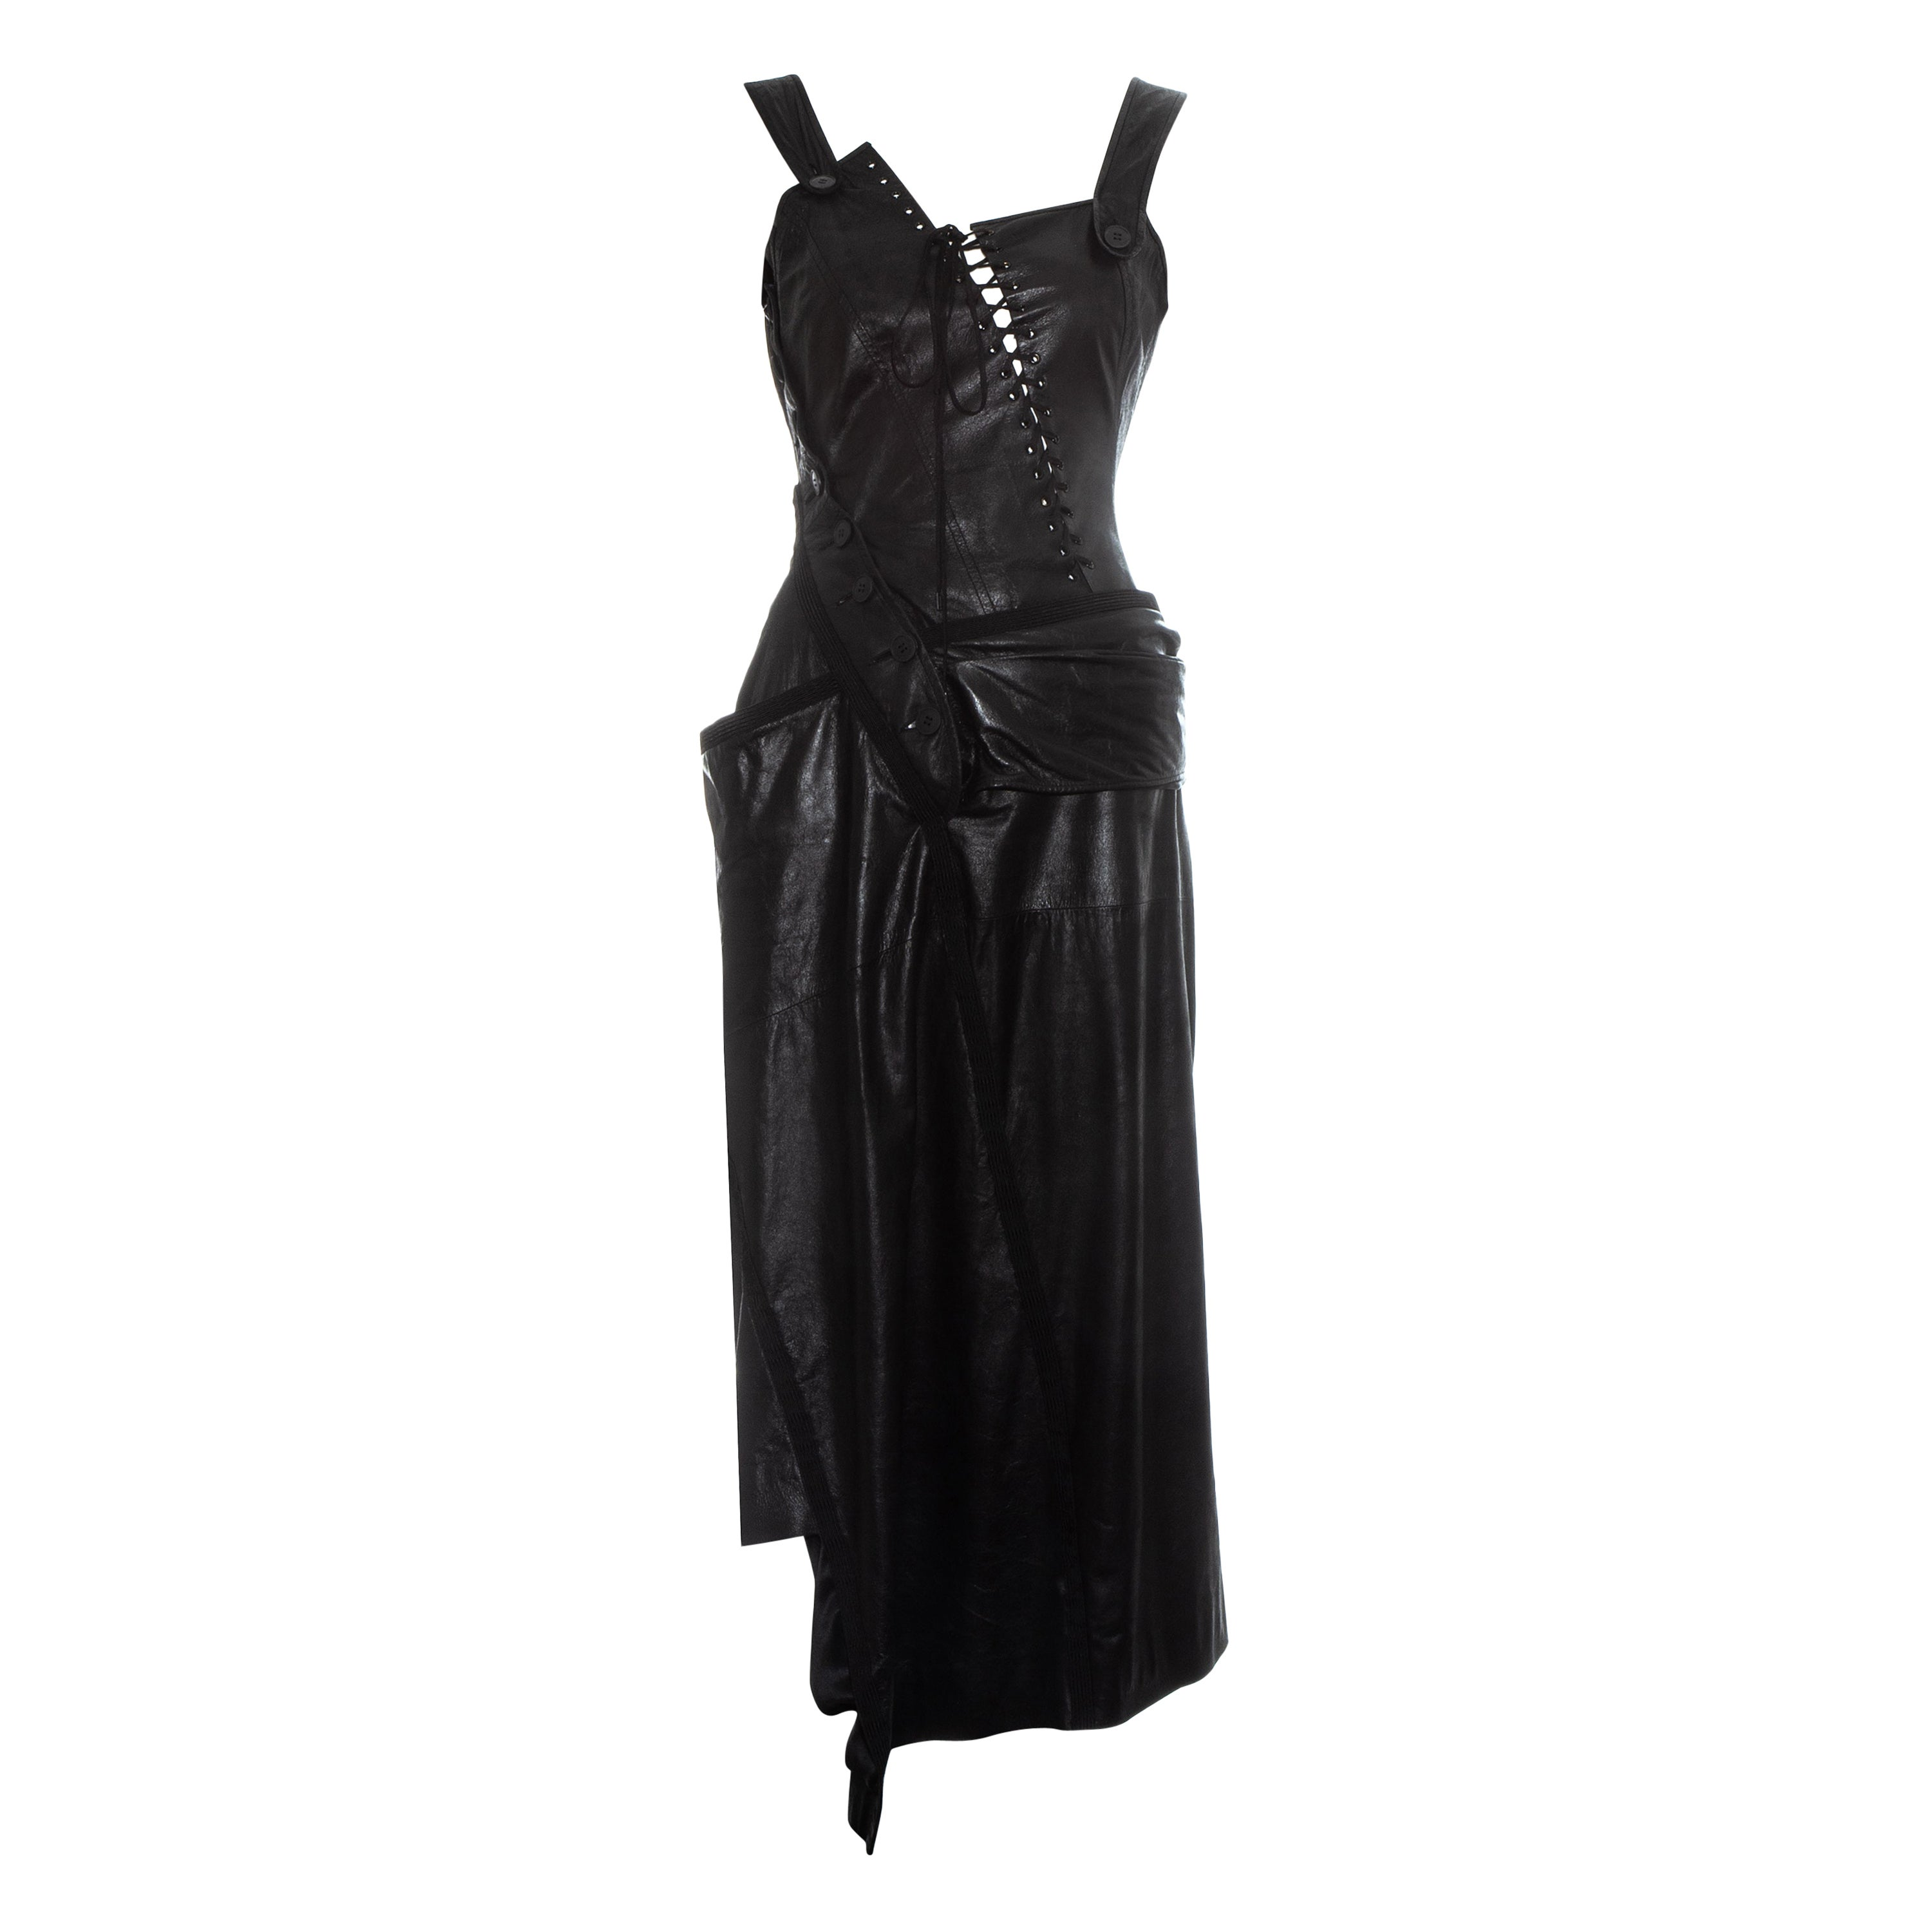 Christian Dior by John Galliano black leather draped and twisted dress, ss 2000